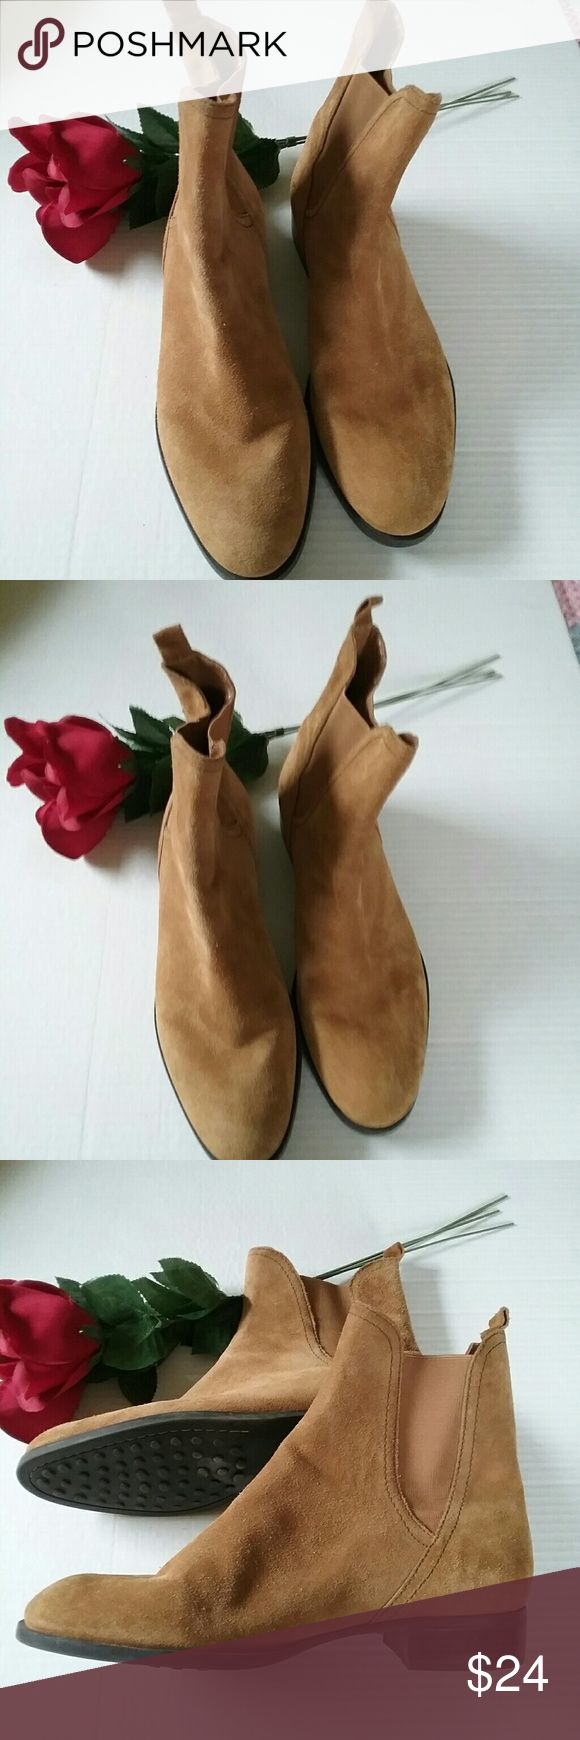 Antonio Melani 10M Light Tan Suede Booties Boots Antonio Melani Size 10M Lt Brown or Tan Suede Bootis. They are in like new condition. ANTONIO MELANI Shoes Ankle Boots & Booties